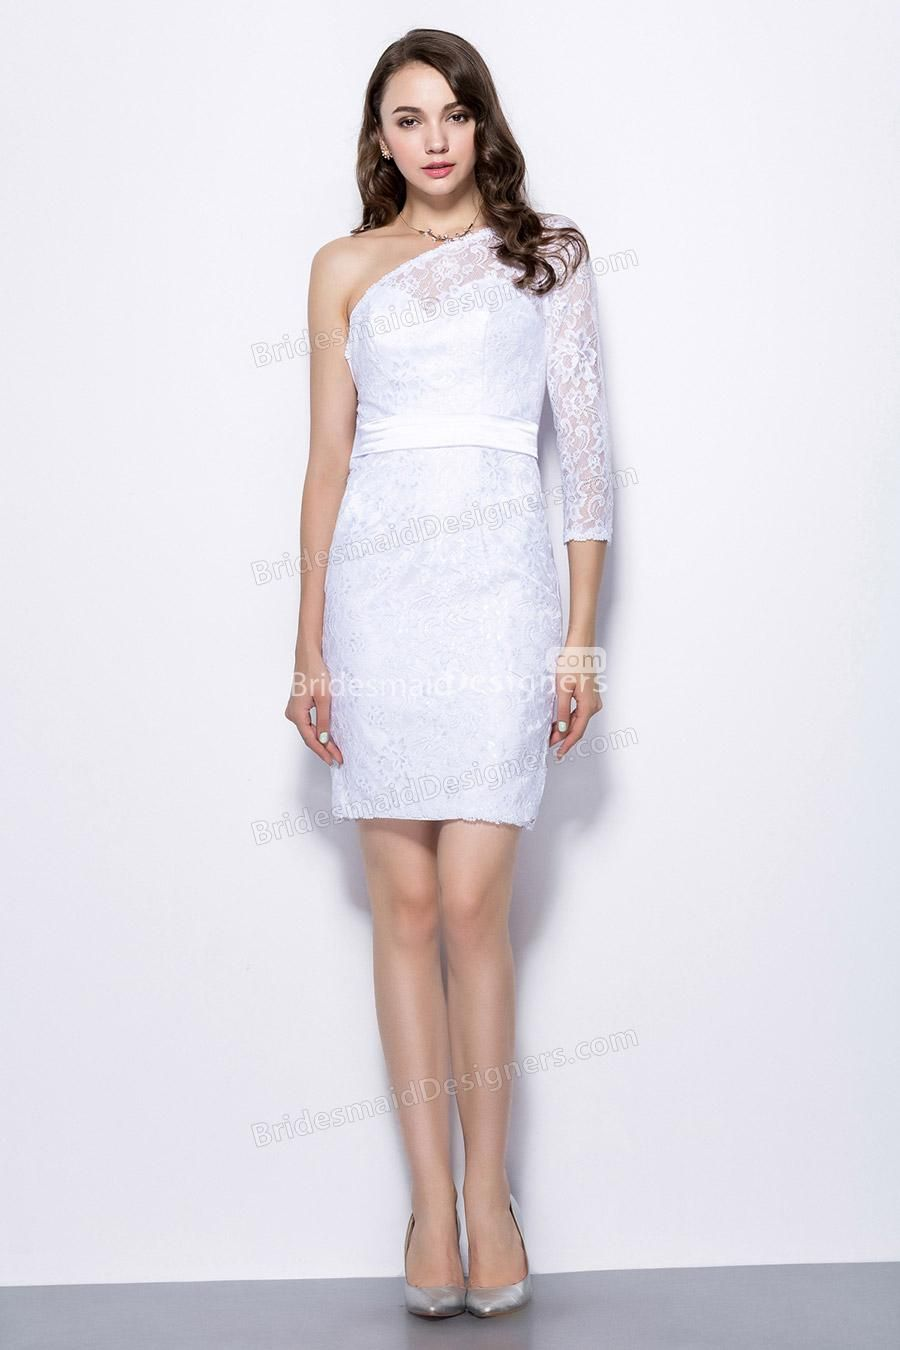 One shoulder sheath short white lace bridesmaid dress with sheer